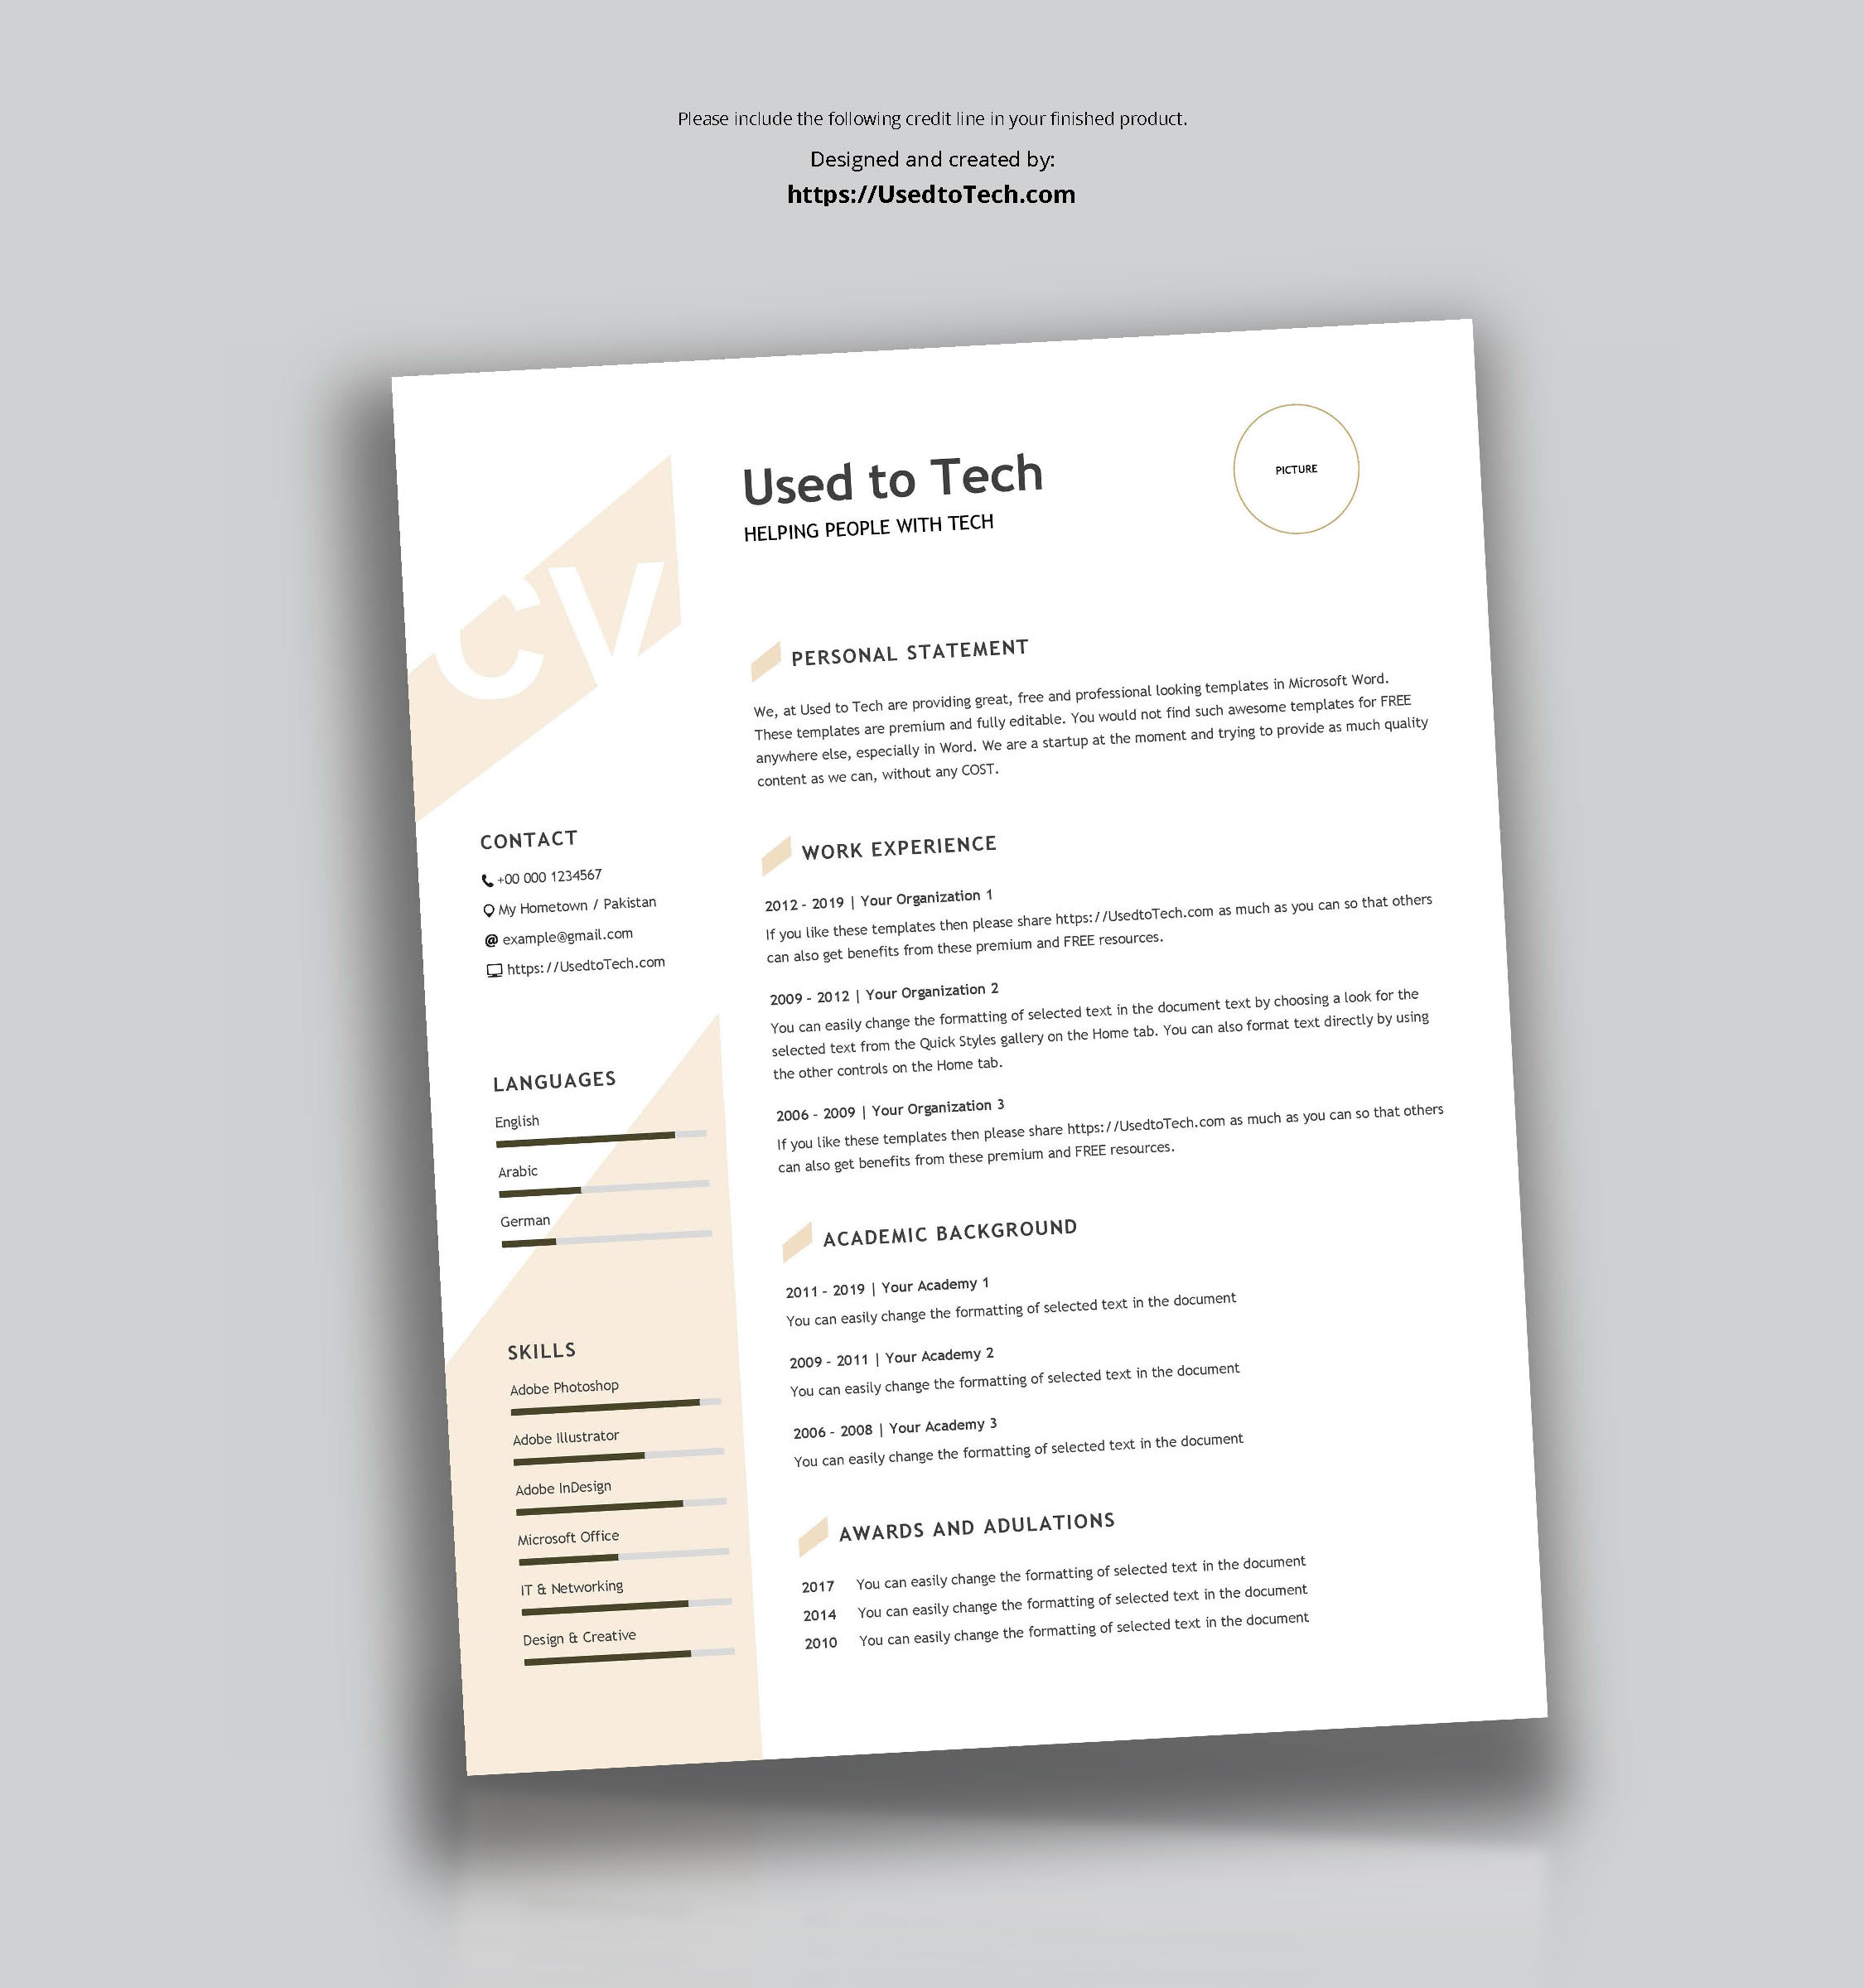 Free Resume Templates Microsoft Word 03 Modern Resume Template In Word free resume templates microsoft word|wikiresume.com